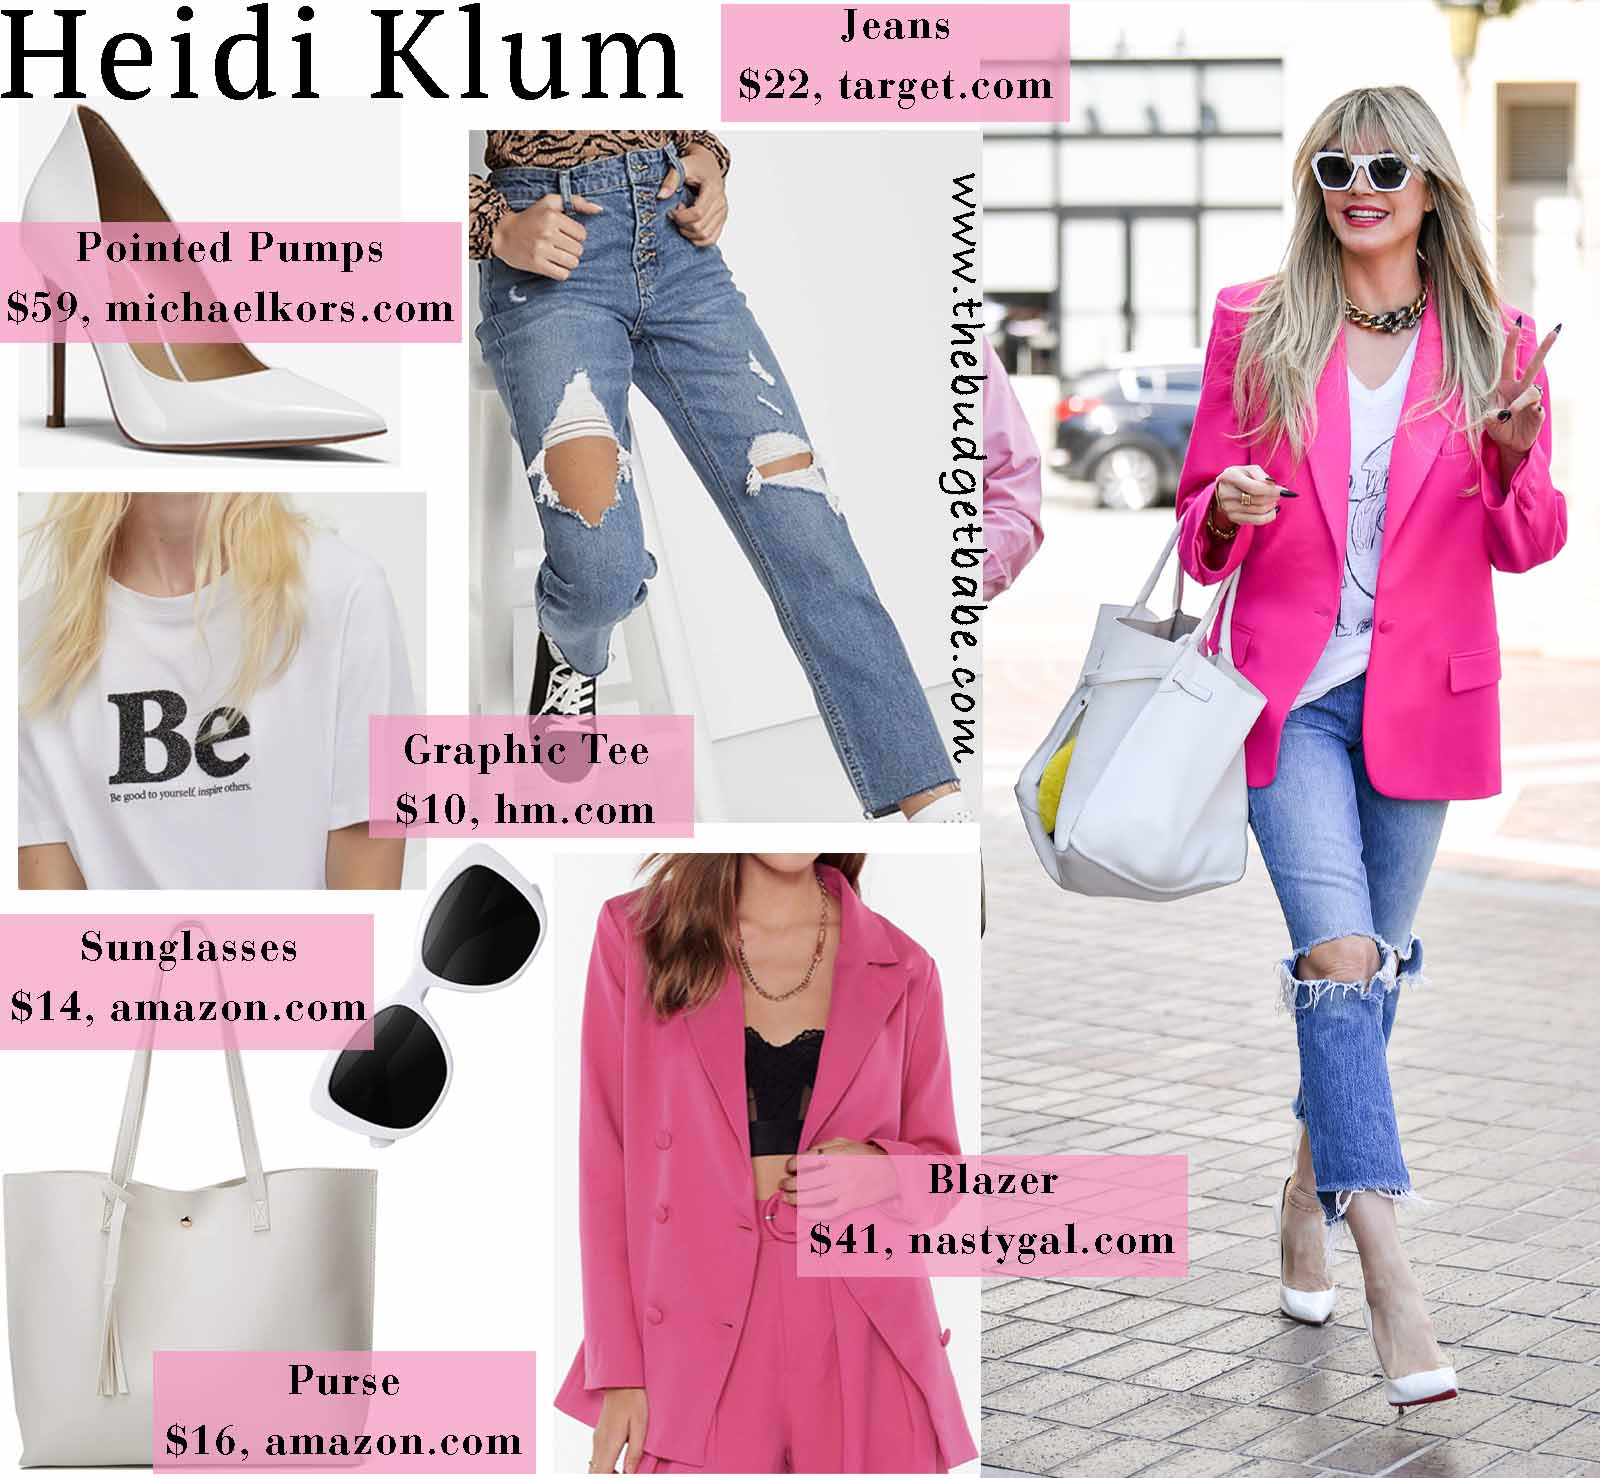 Heidi's street style stands out!